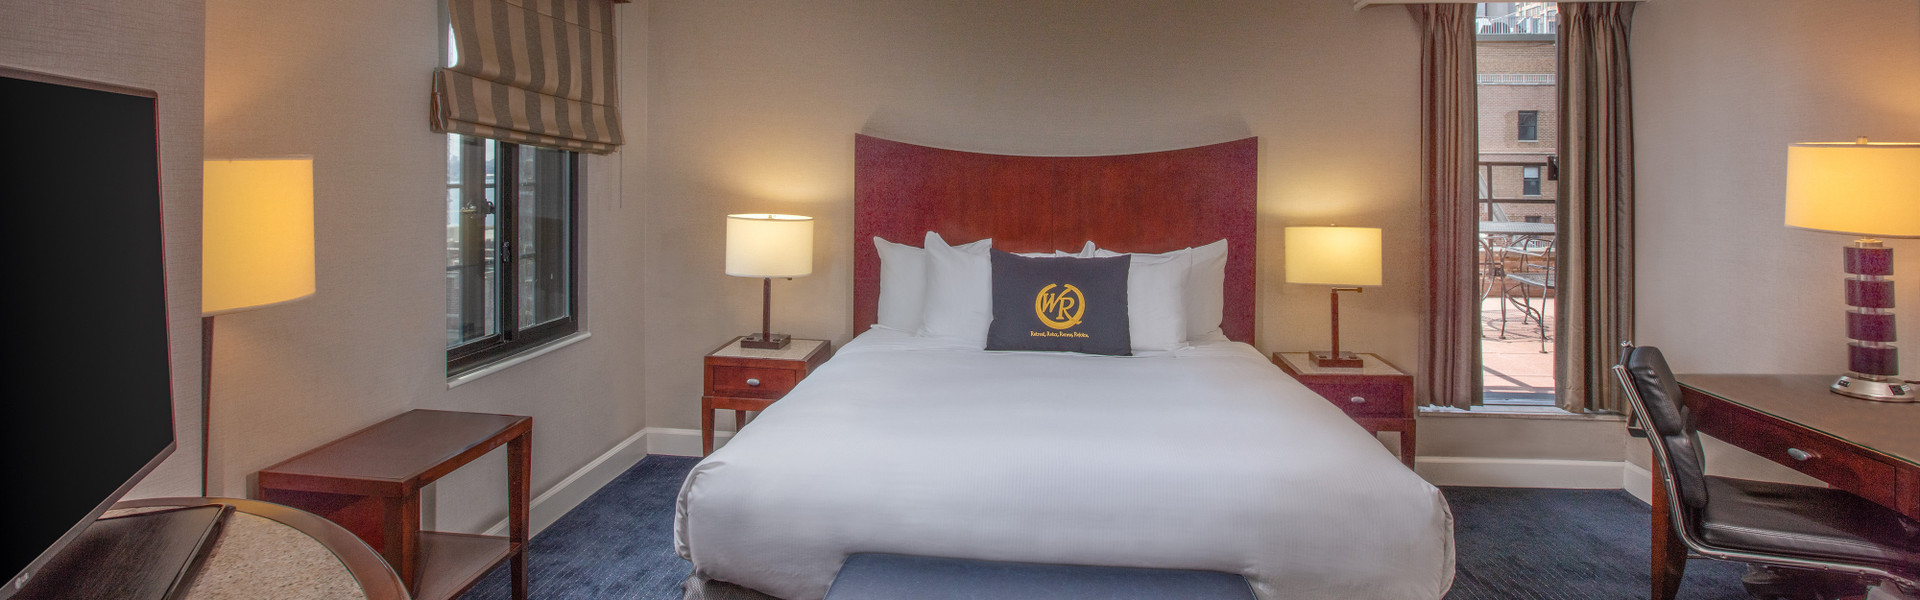 King Balcony Suite in NYC | Westgate New York Grand Central Hotel | Hotel Rooms Near Grand Central Station